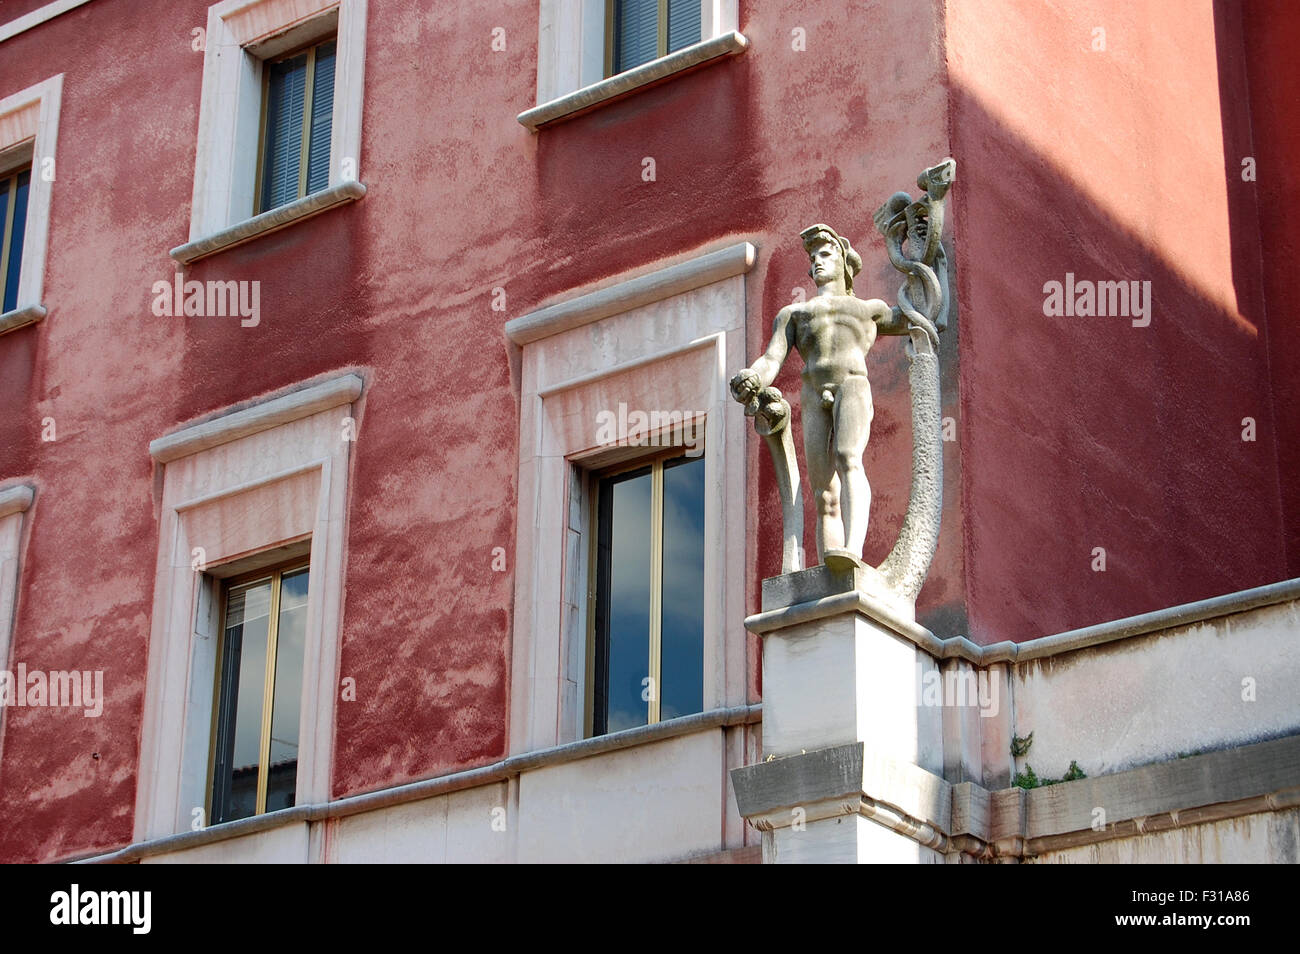 Statue set against the pink building of the Posta Italiane in Vicenza, Italy. - Stock Image